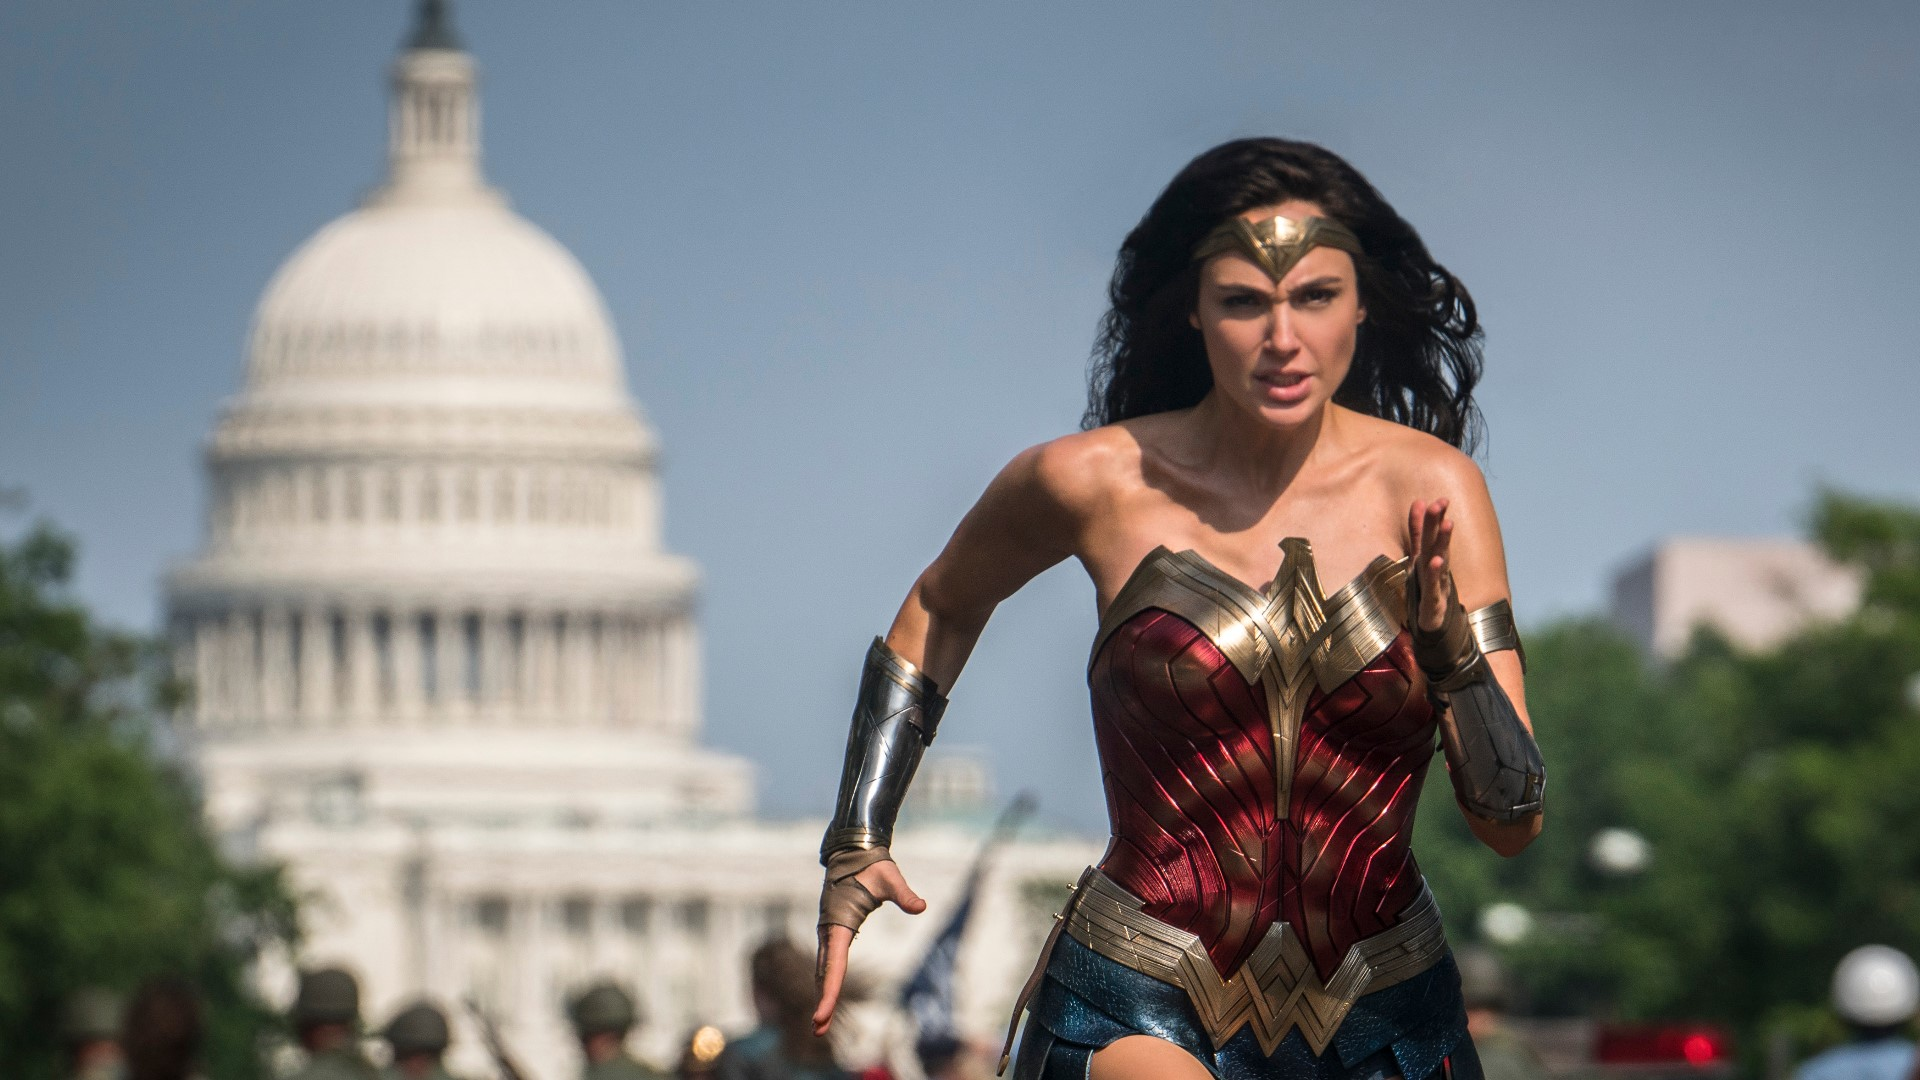 Wonder Woman 1984 Released Dec 25 On Hbo Max And In Theaters 11alive Com